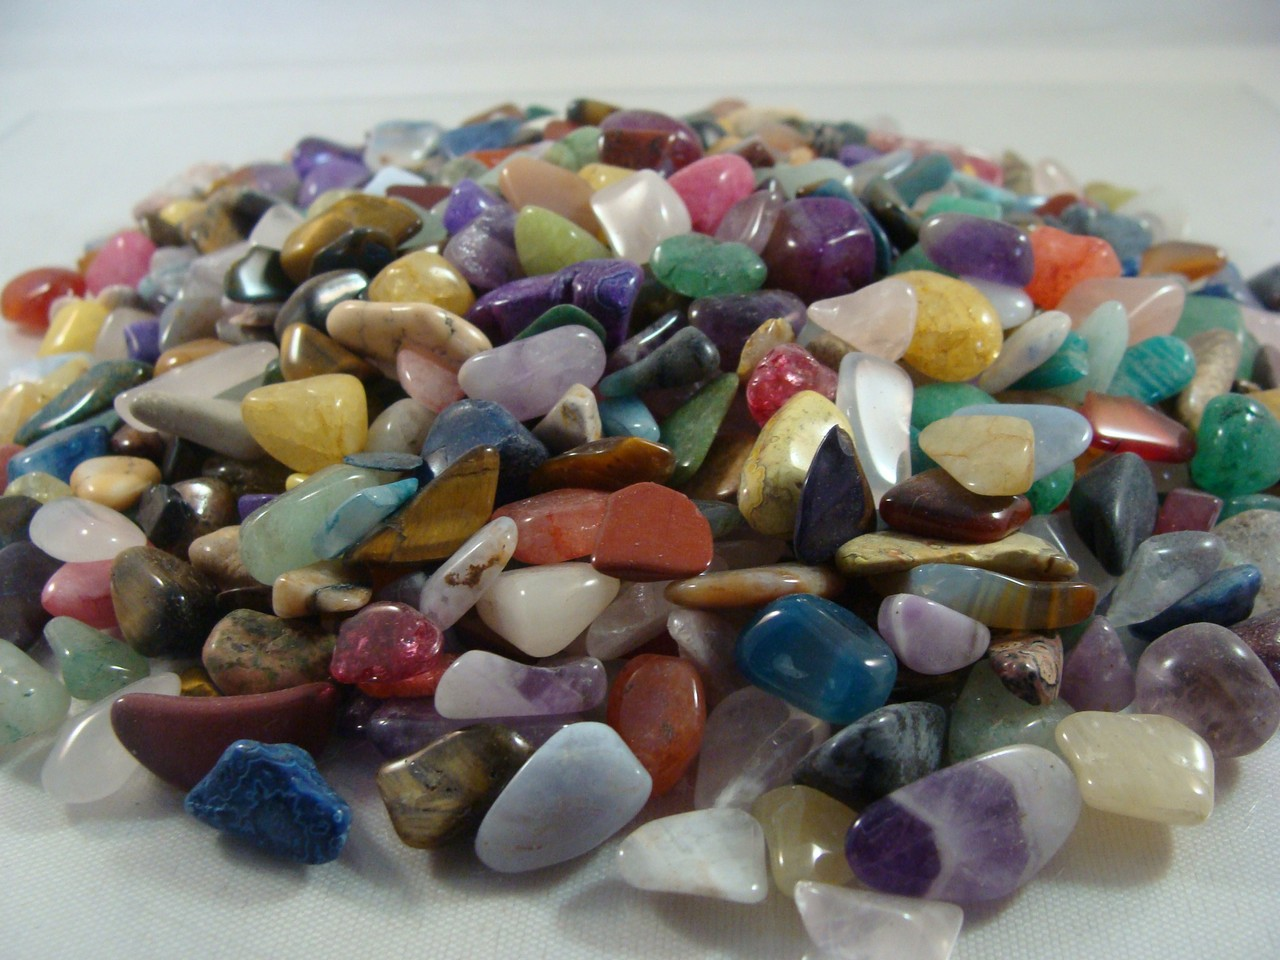 About 60. 1//4 lb pound of tumbled polished crystal gemstones and amethyst